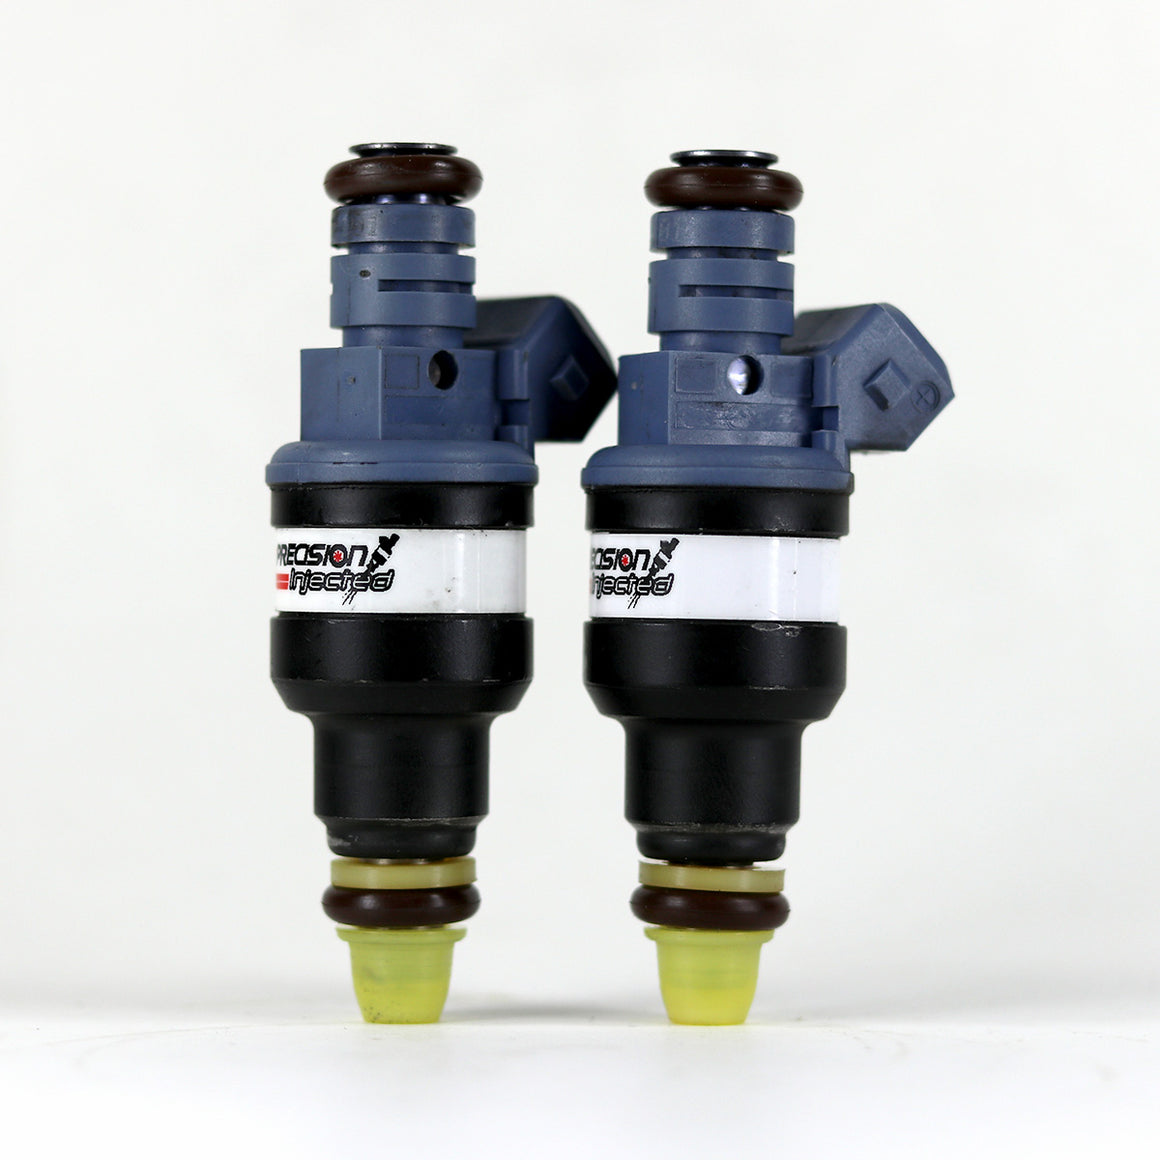 USED/CLEANED PAIR OF PRECISION 160 LB/HR INJECTORS